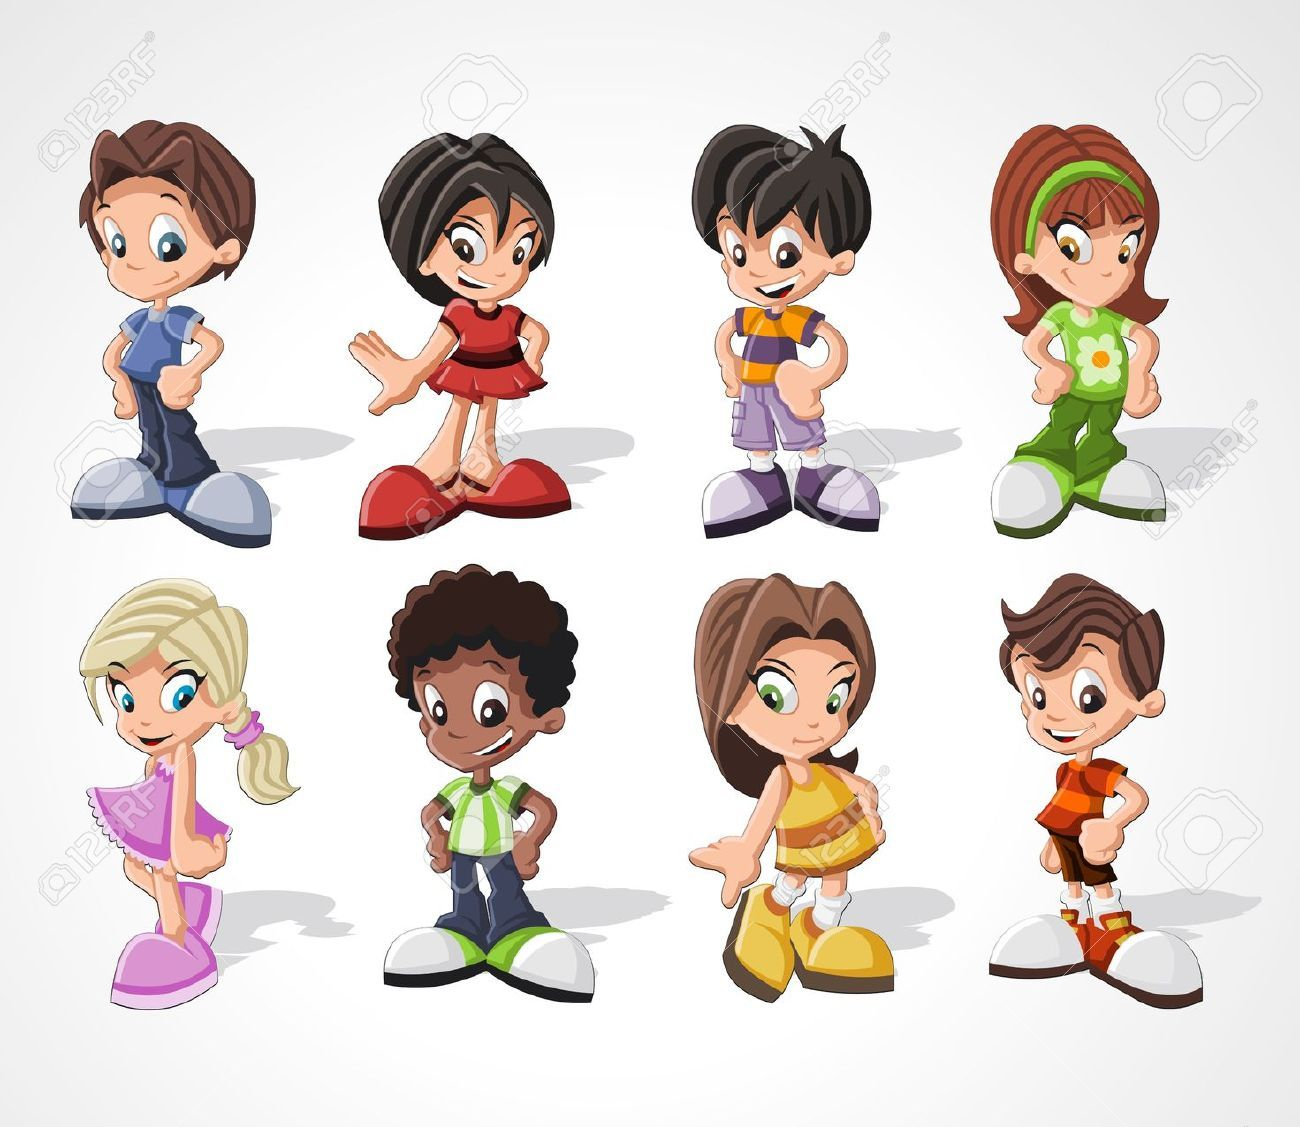 Cartoon boys standing on toes google search children